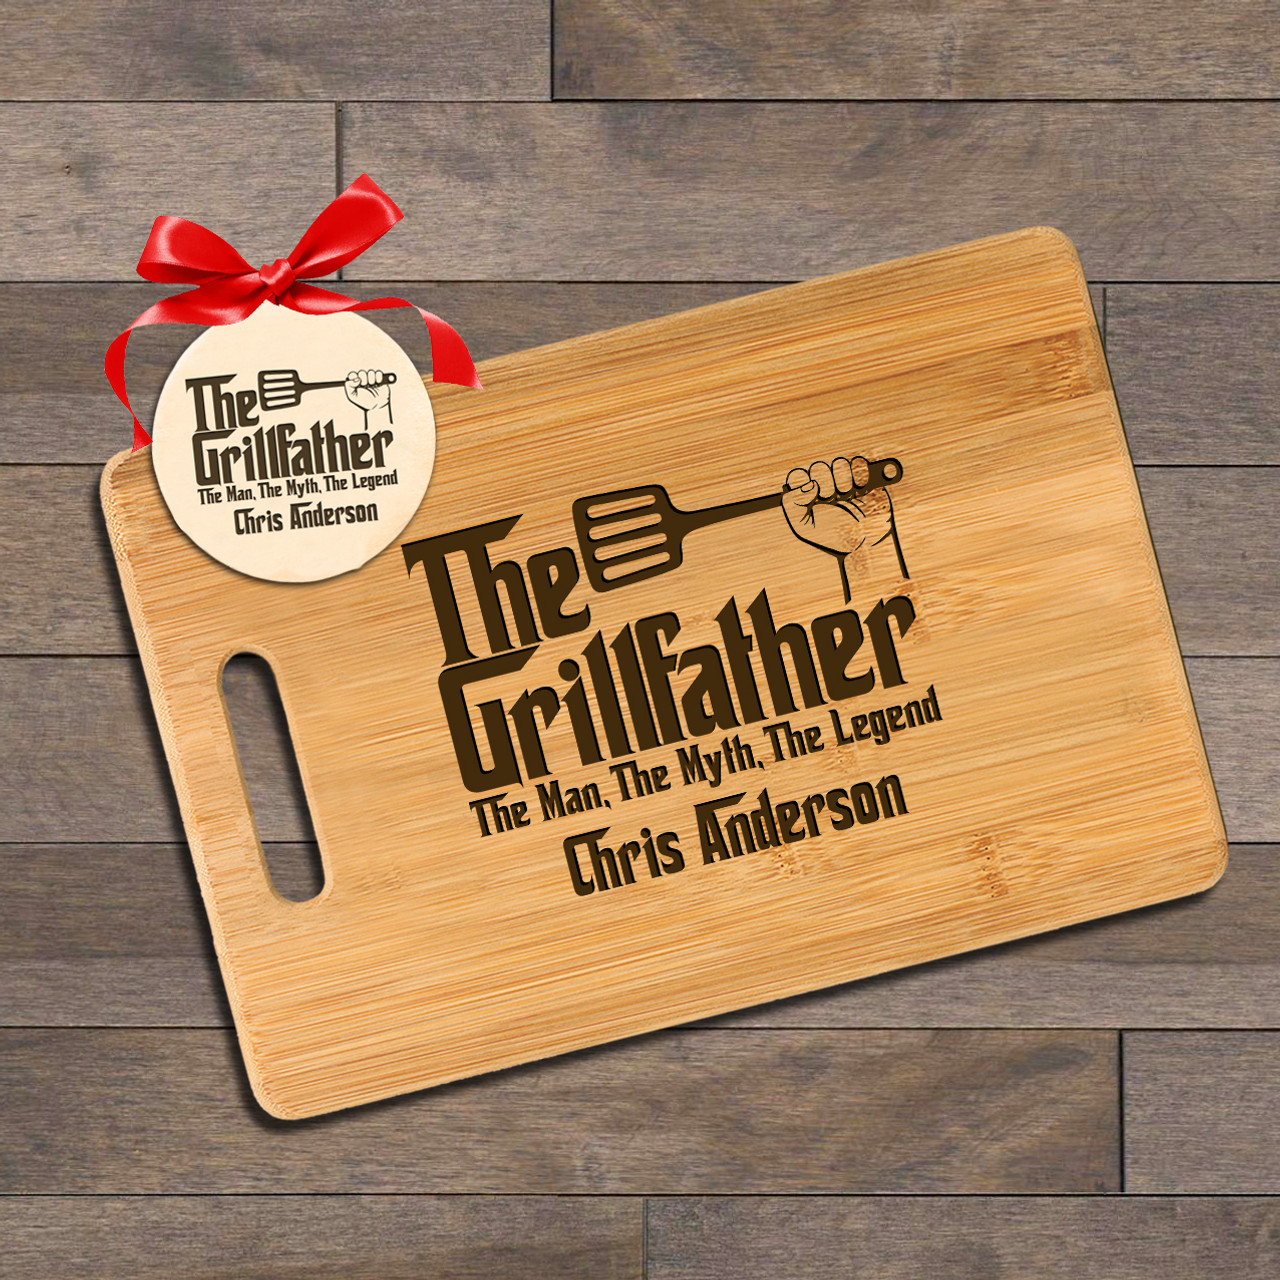 Personalized Cutting Board with Ornament - The Grillfather